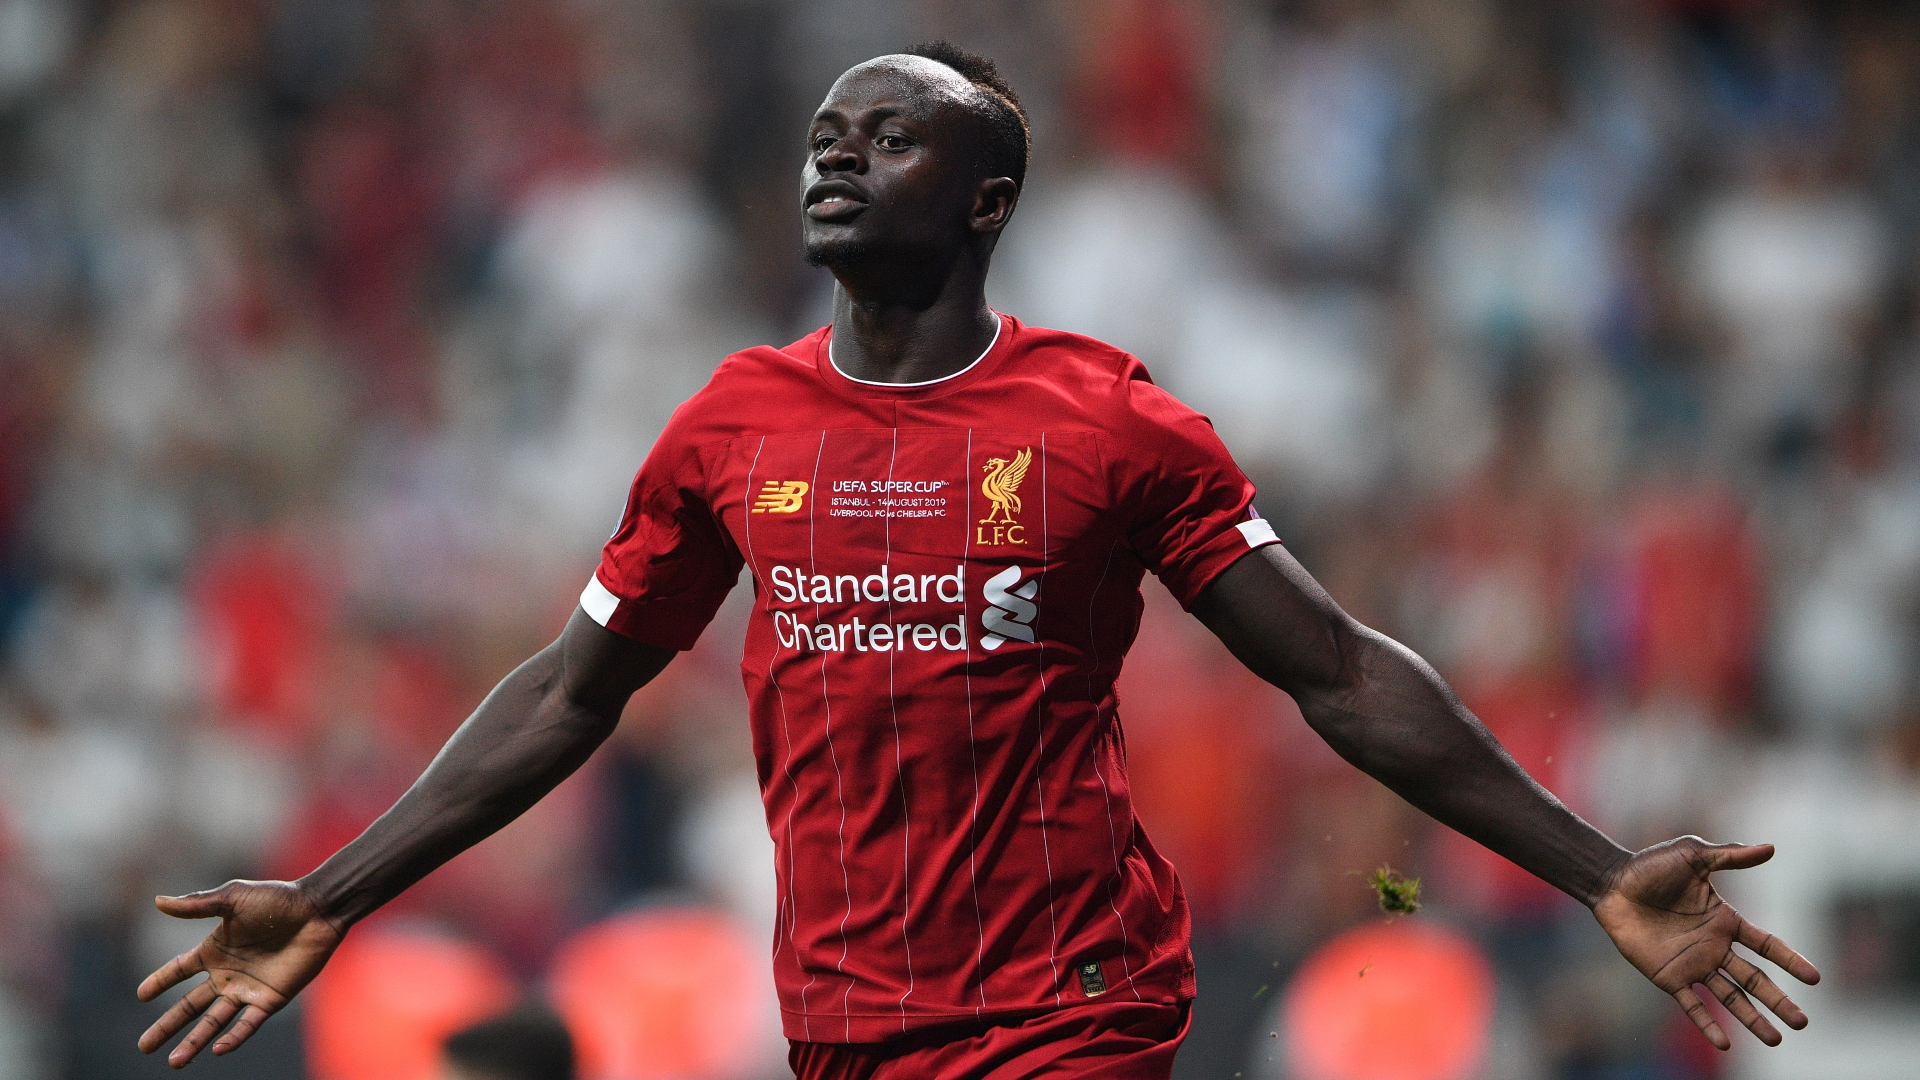 Liverpool icon Jason McAteer warns Reds they could lose Sadio Mane to Real Madrid - Bóng Đá